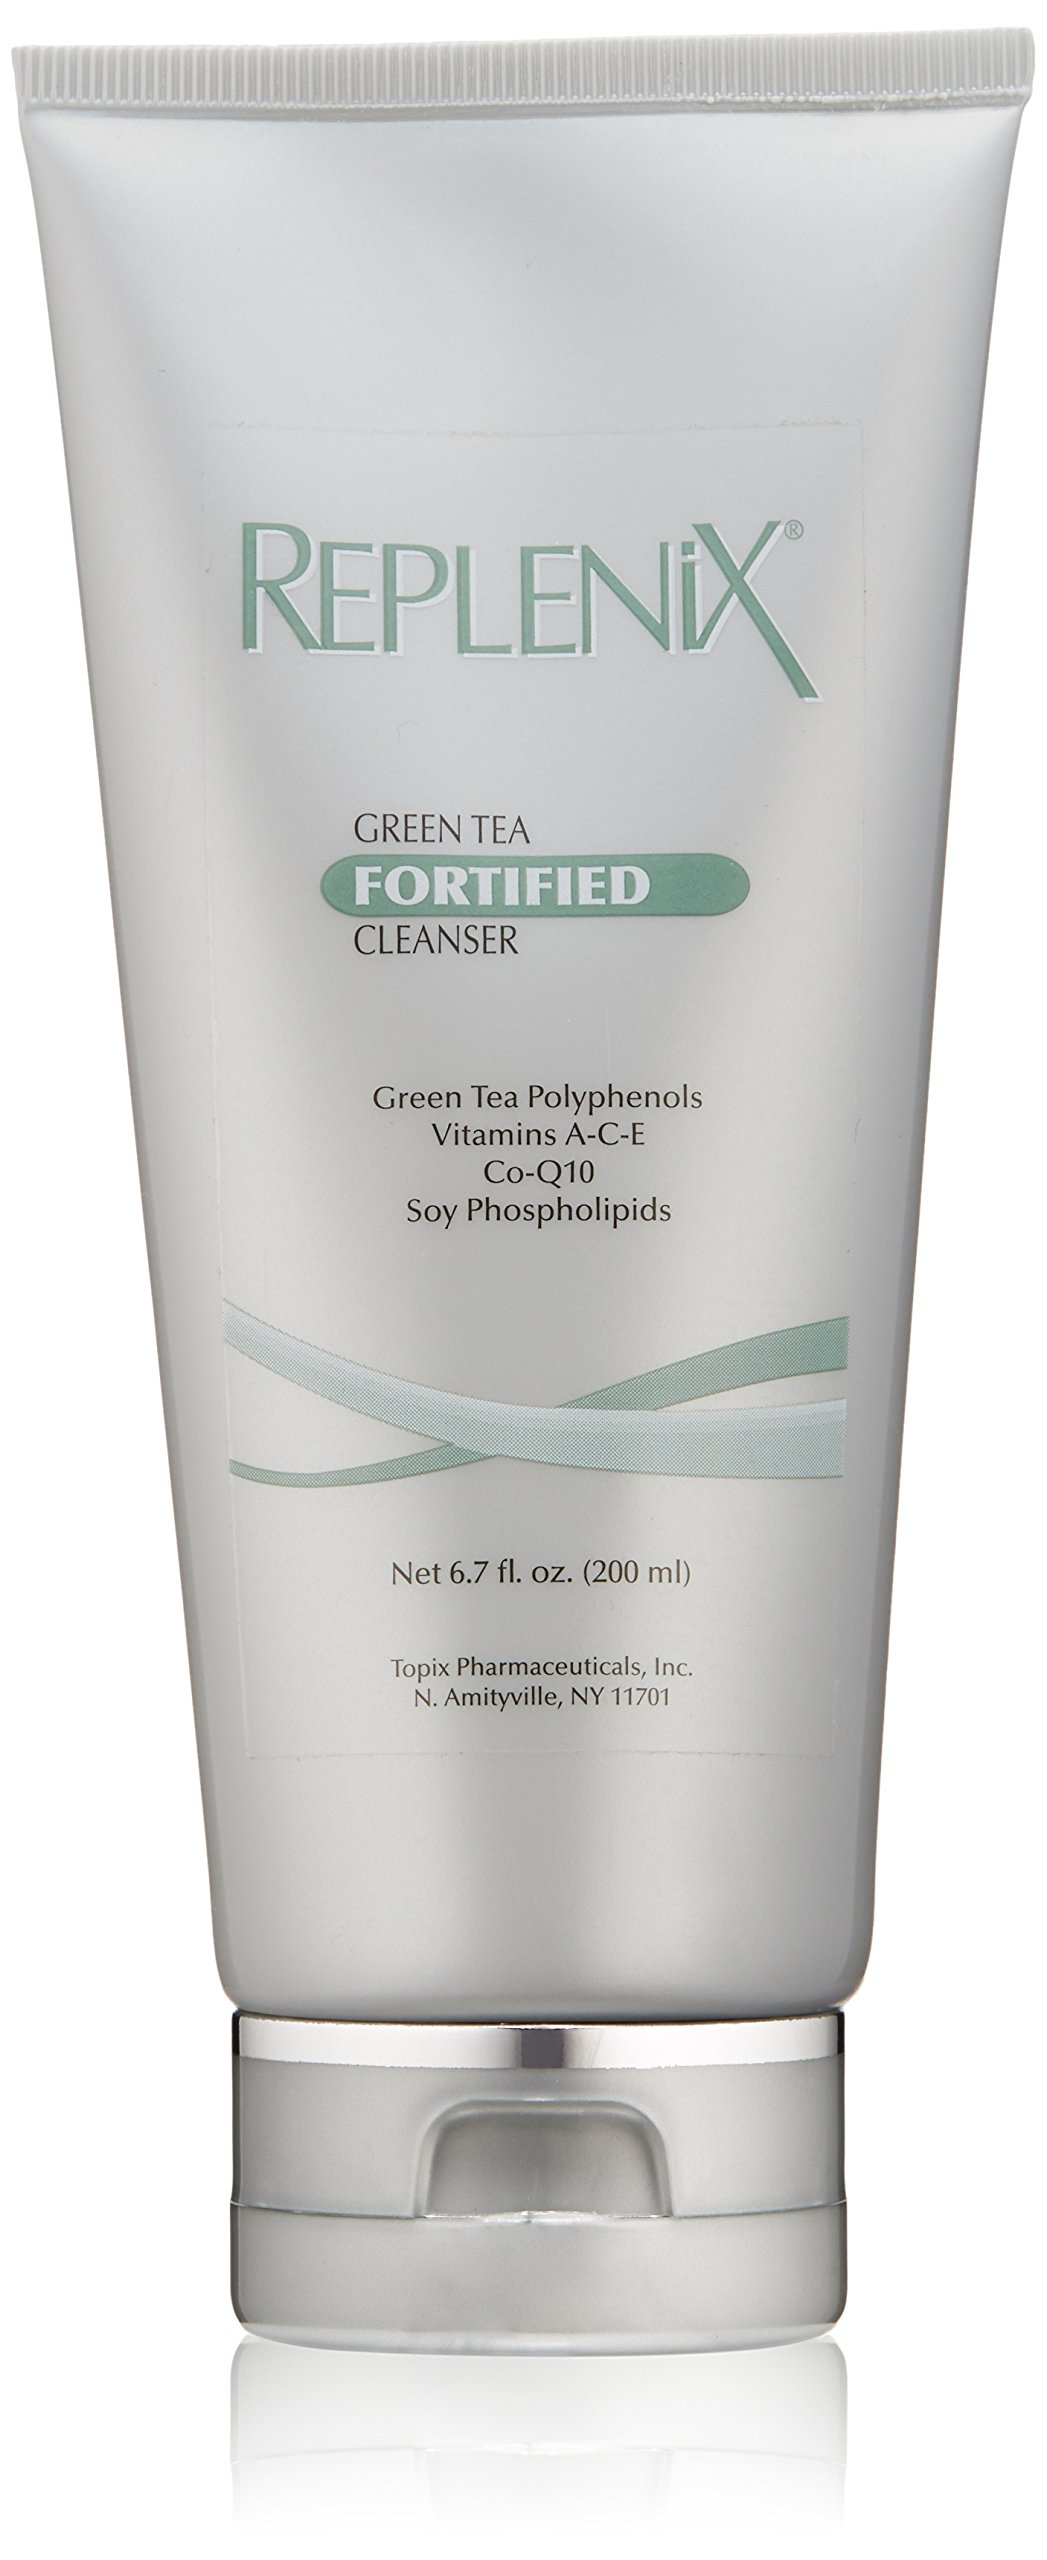 Replenix Green Tea Fortified Antioxidant Cleanser Naturally Soothes and Hydrates Sensitive Skin, 6.7 Fl oz